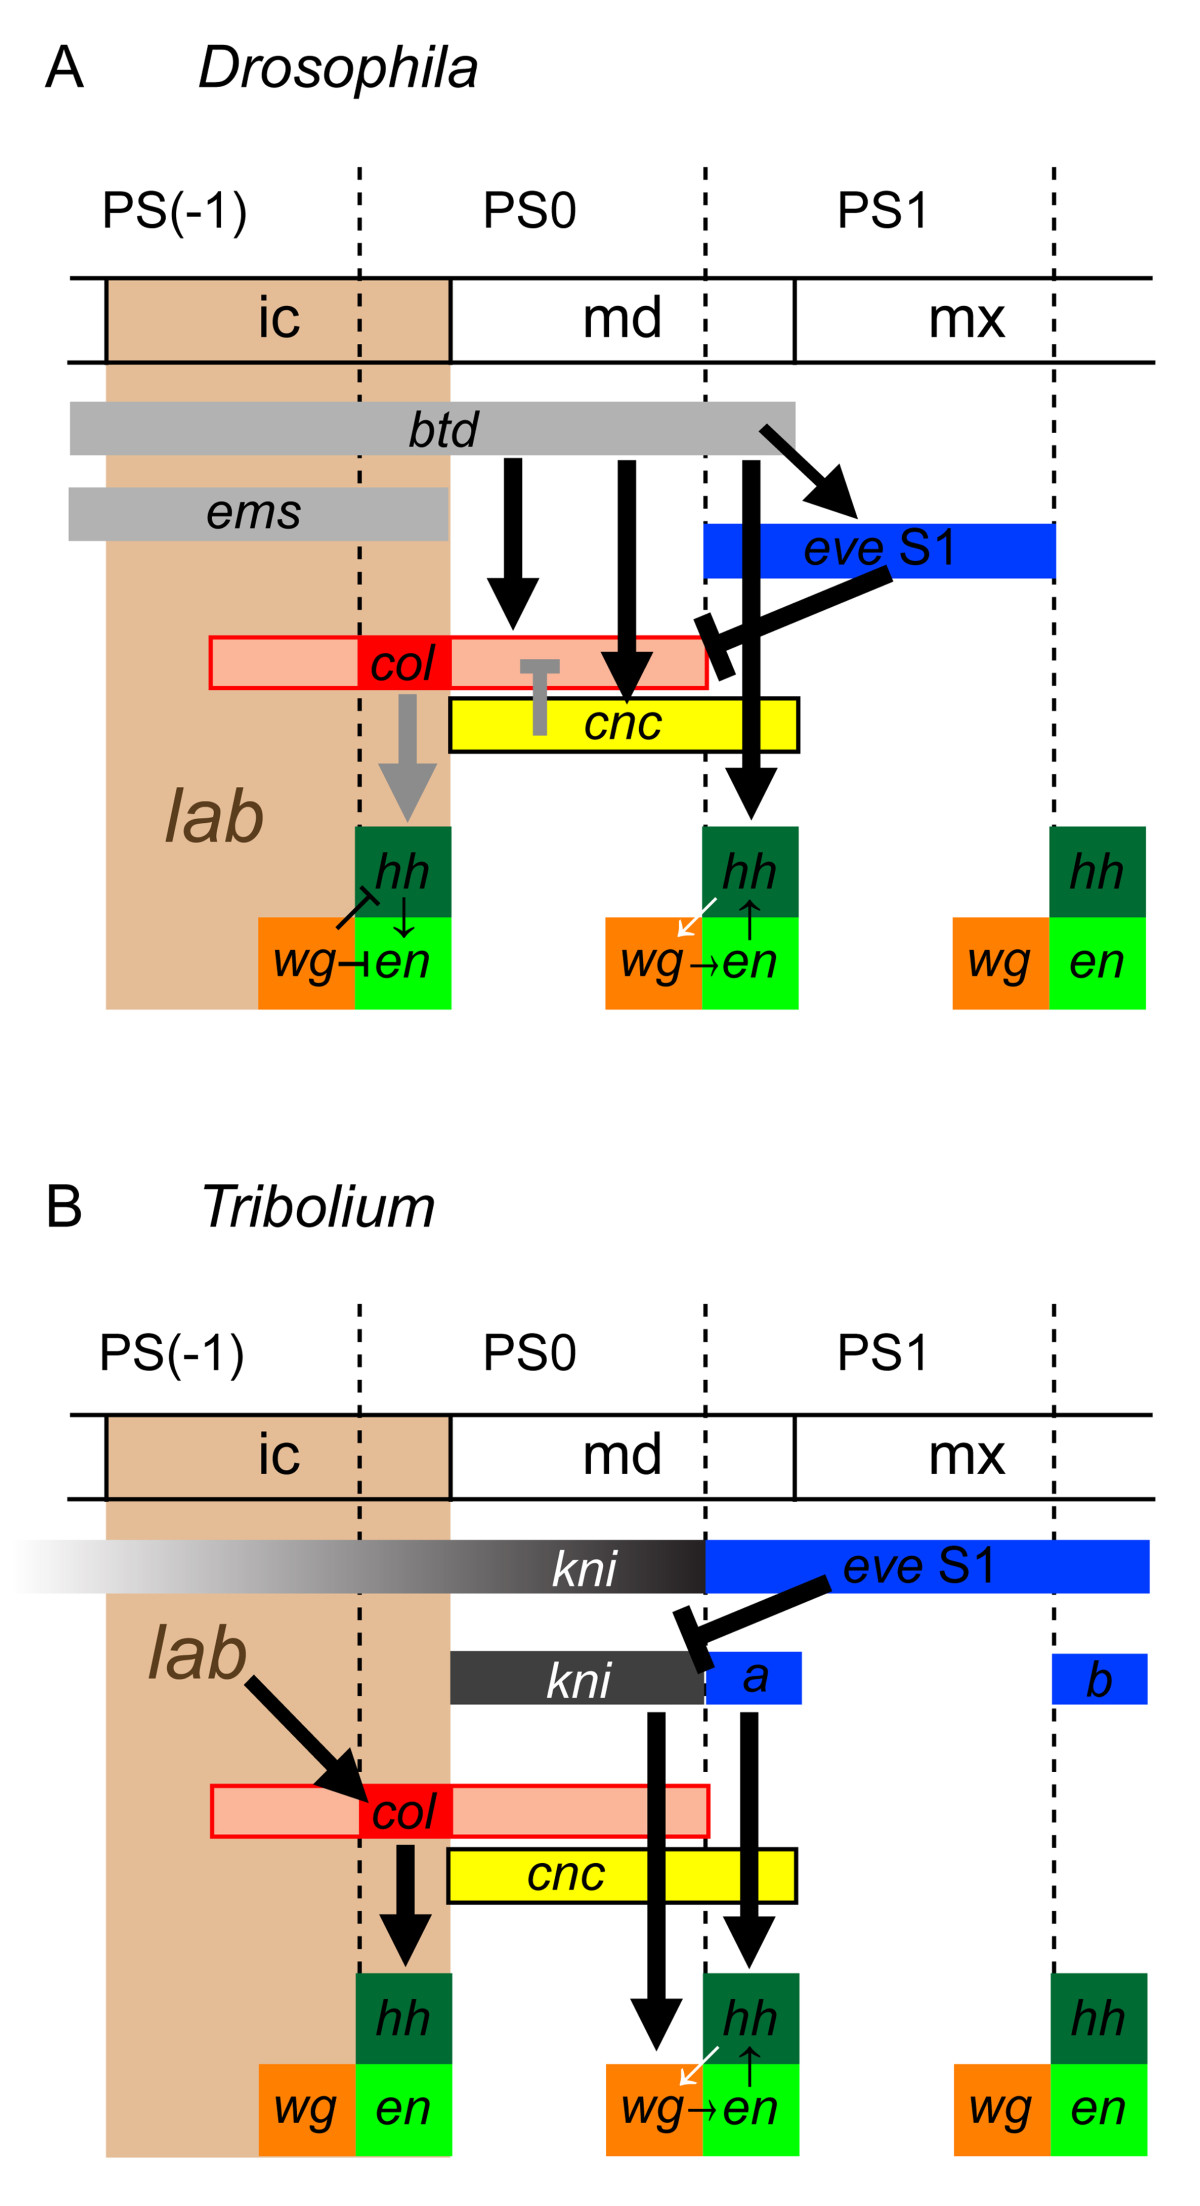 https://static-content.springer.com/image/art%3A10.1186%2F1471-213X-13-25/MediaObjects/12861_2013_Article_736_Fig10_HTML.jpg